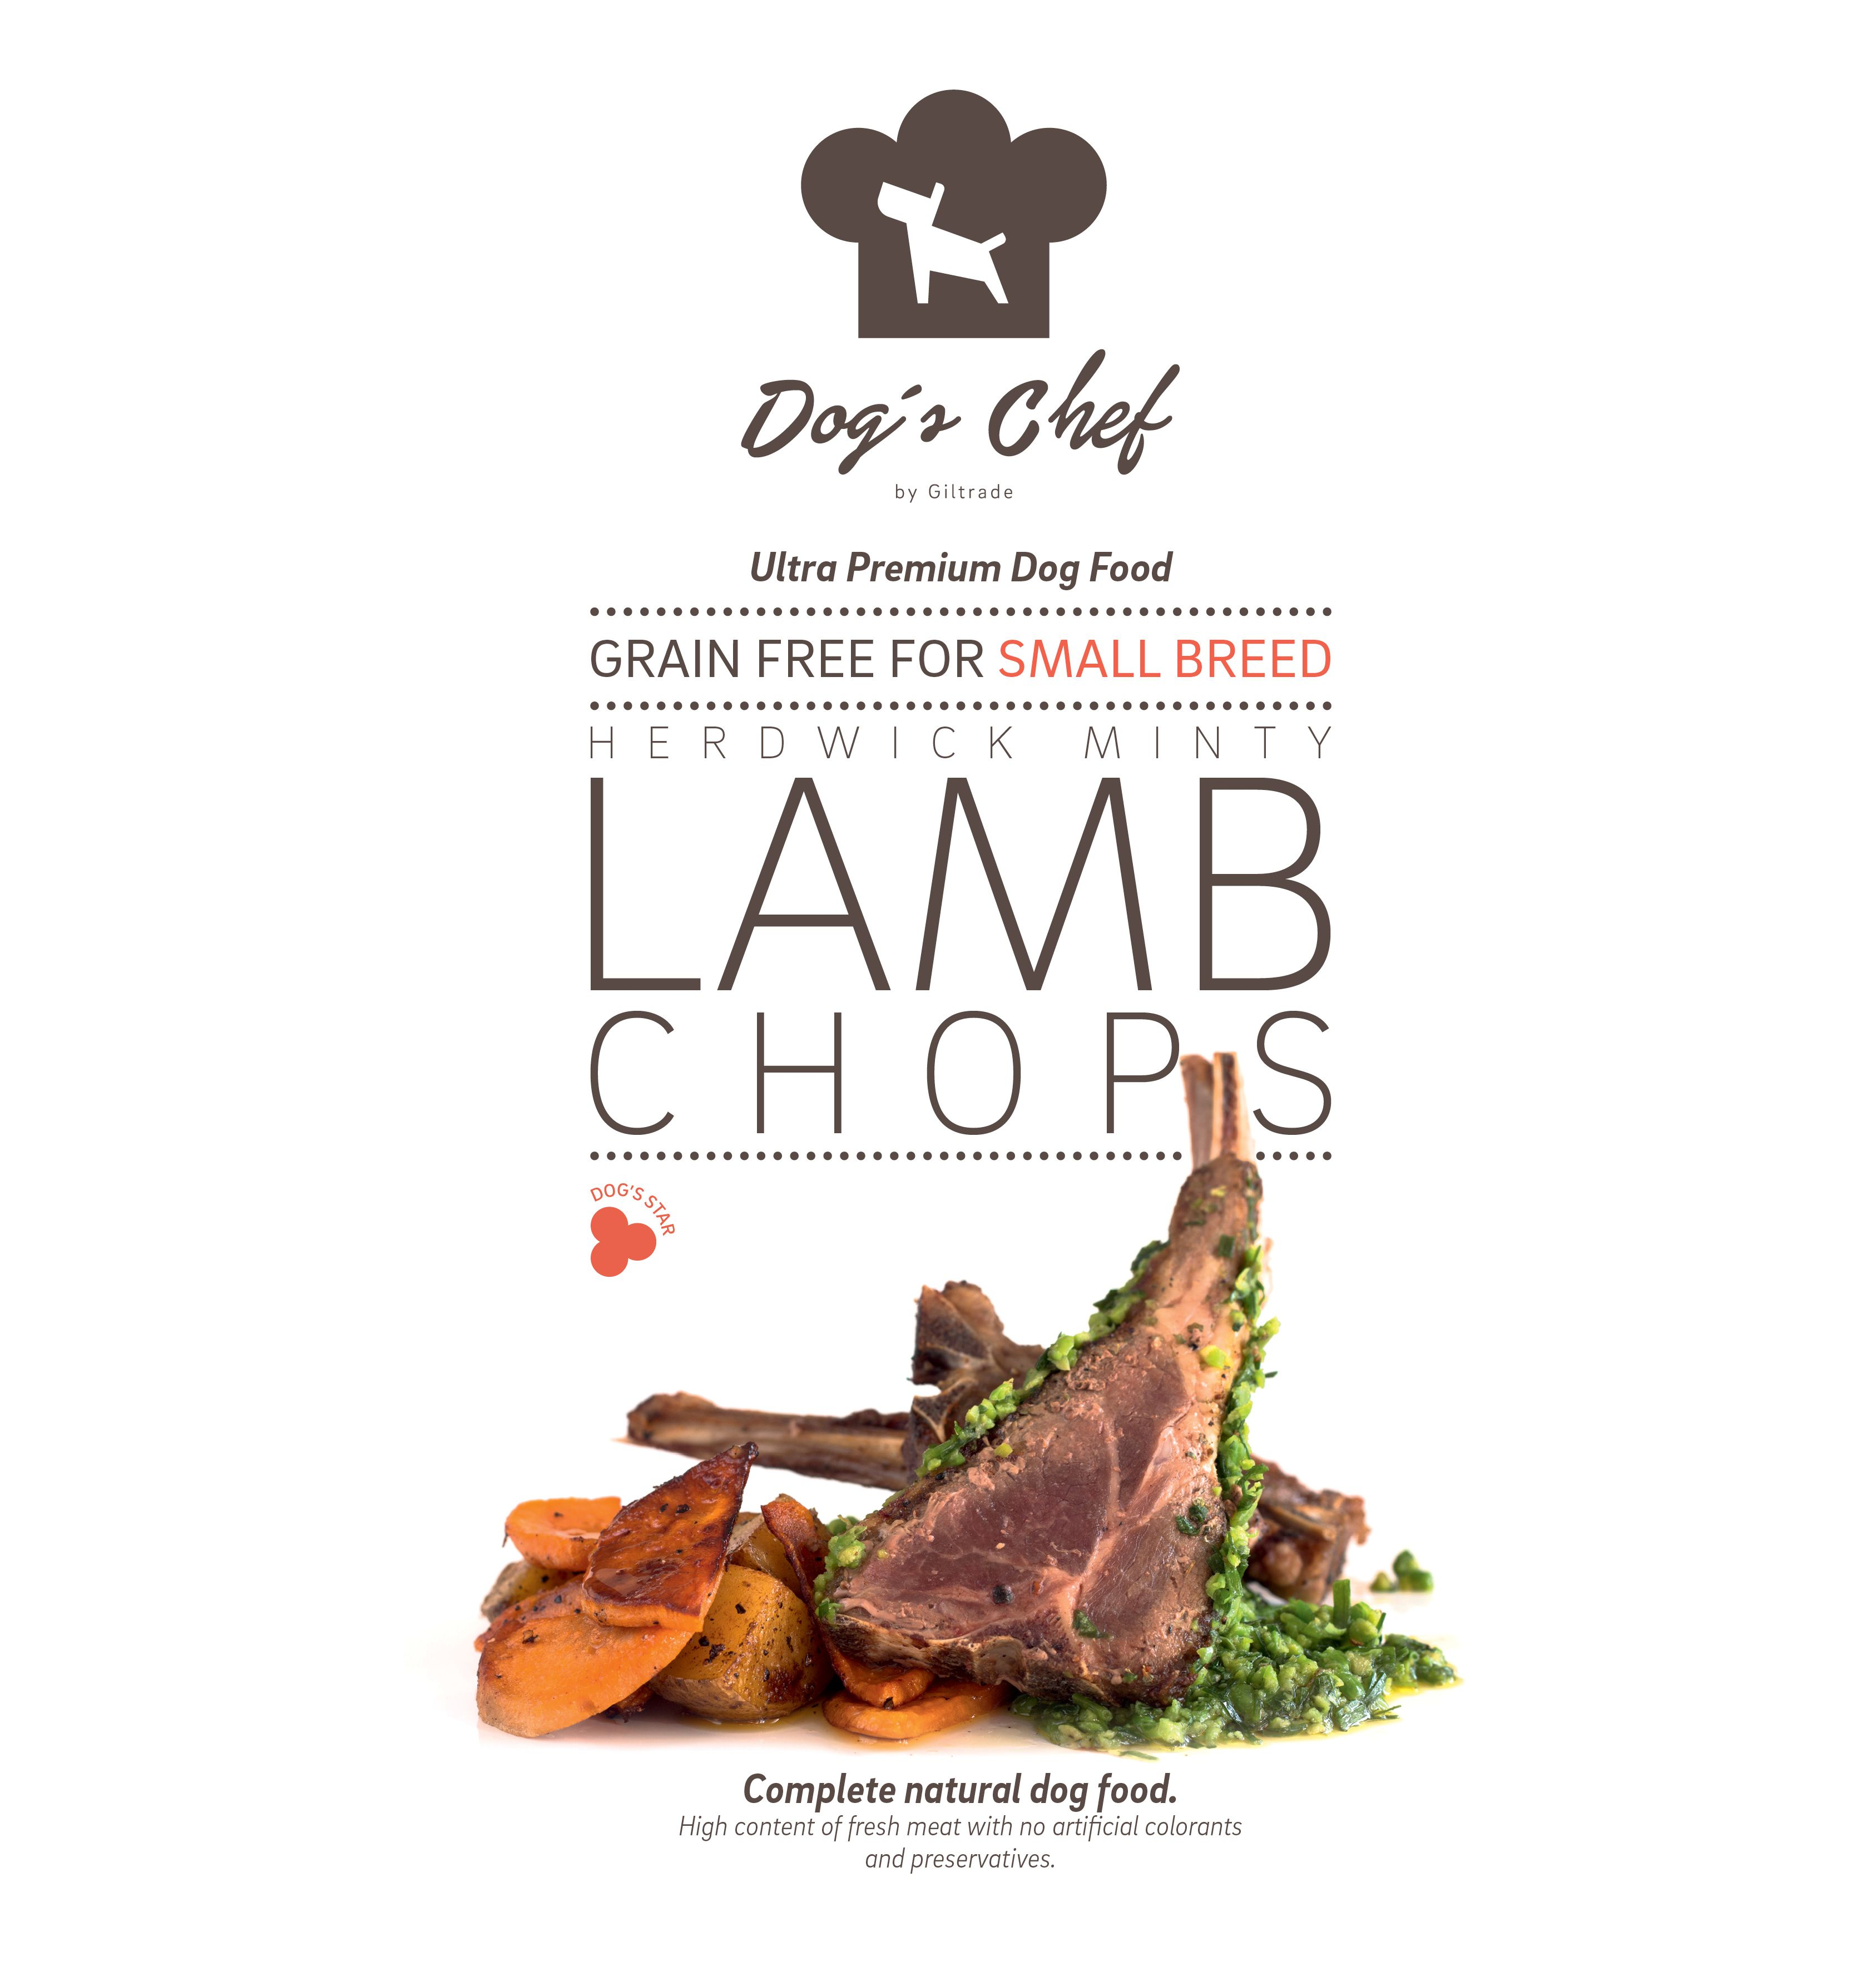 DOG'S CHEF Herdwick Minty Lamb Chops for SMALL BREED 2kg